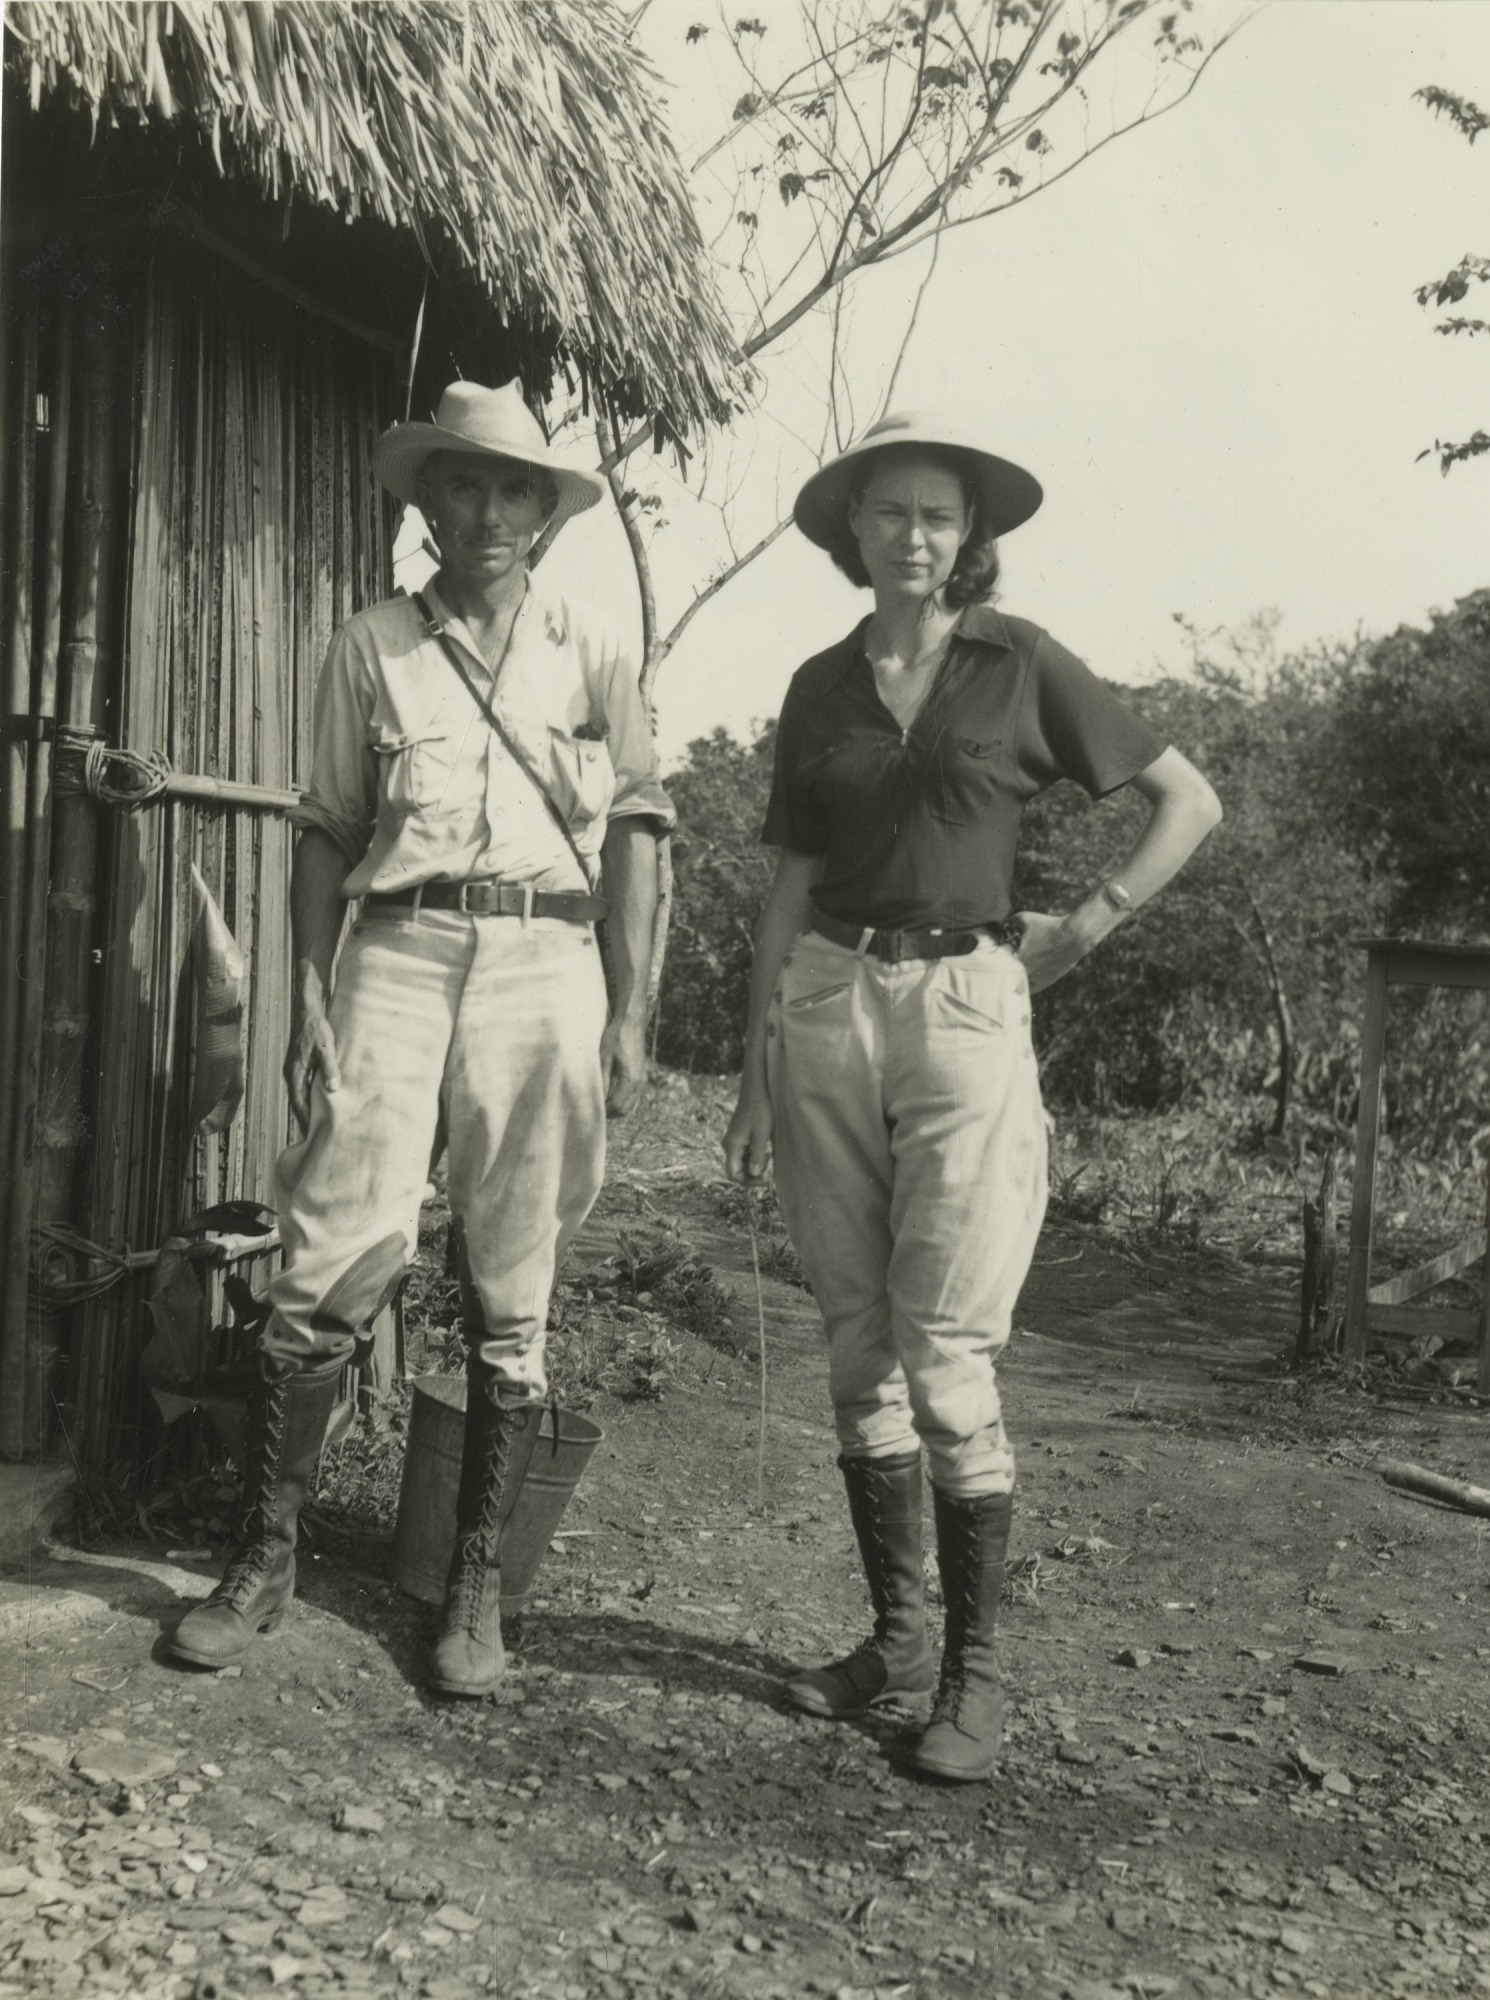 Matthew and Marion Stirling in Camp at Tres Zapotes, Veracruz, Mexico